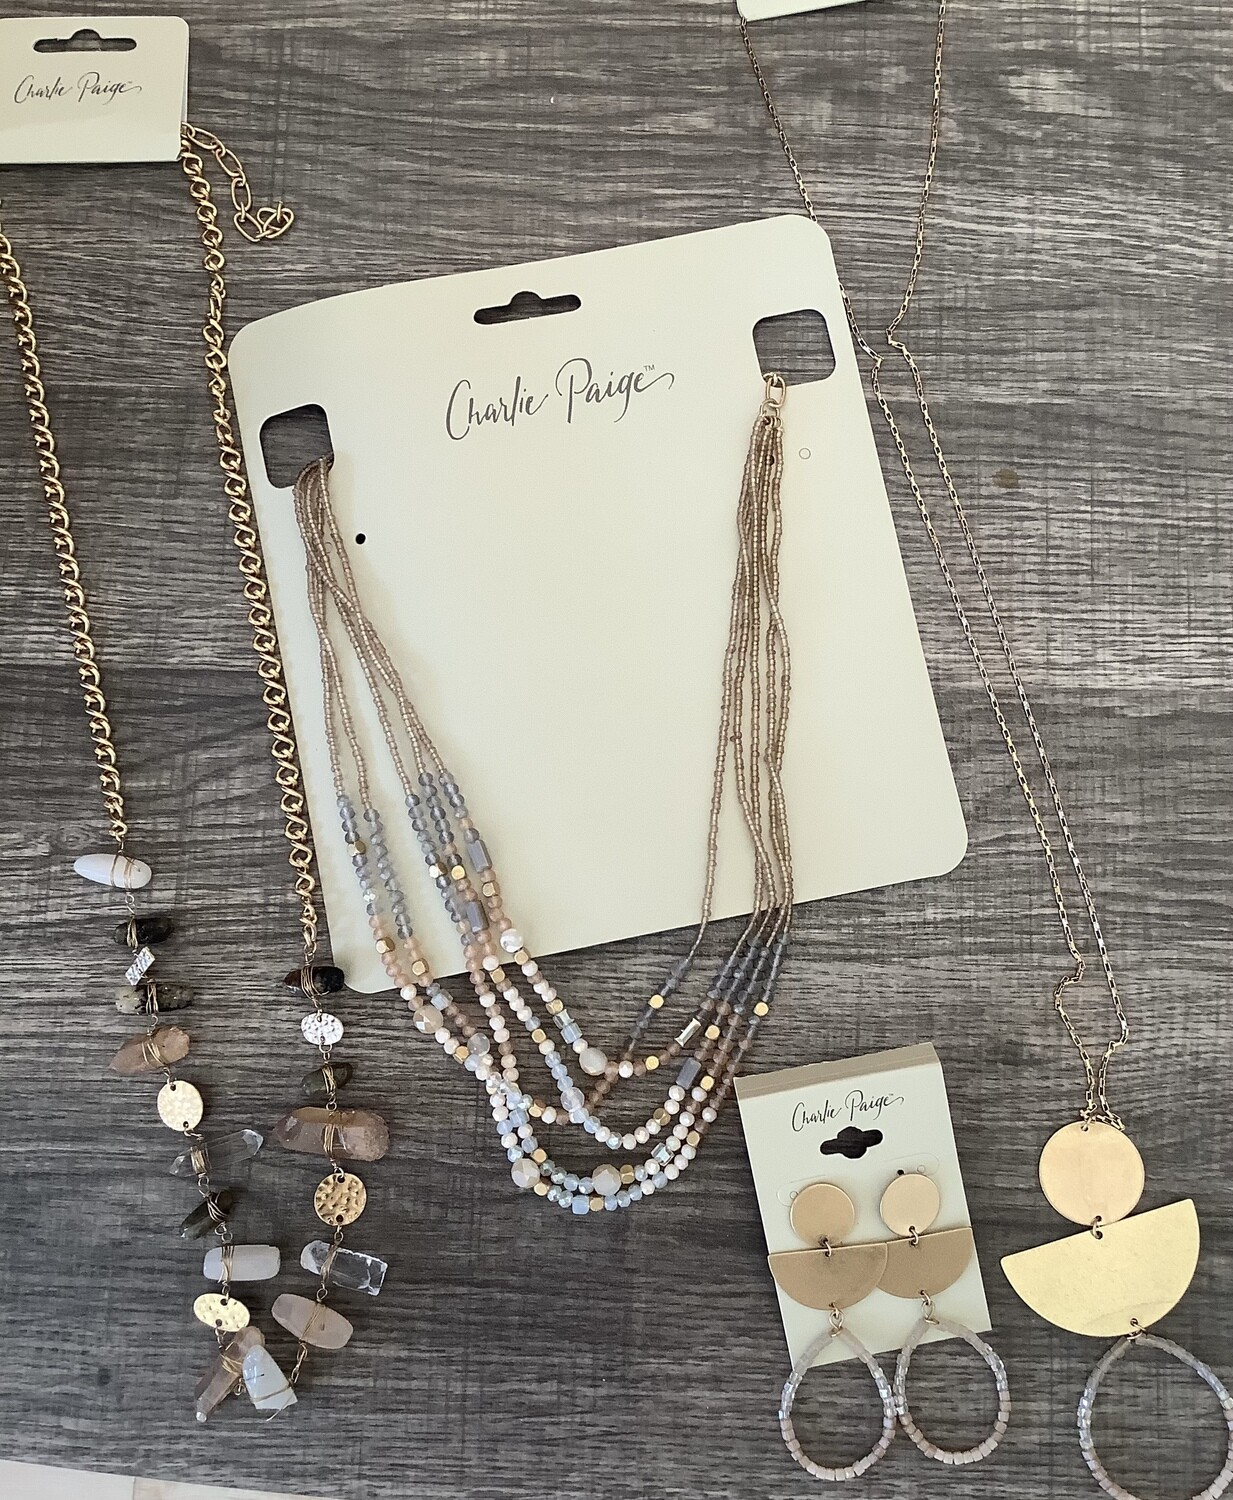 CP Tones of Blush Jewelry Asst